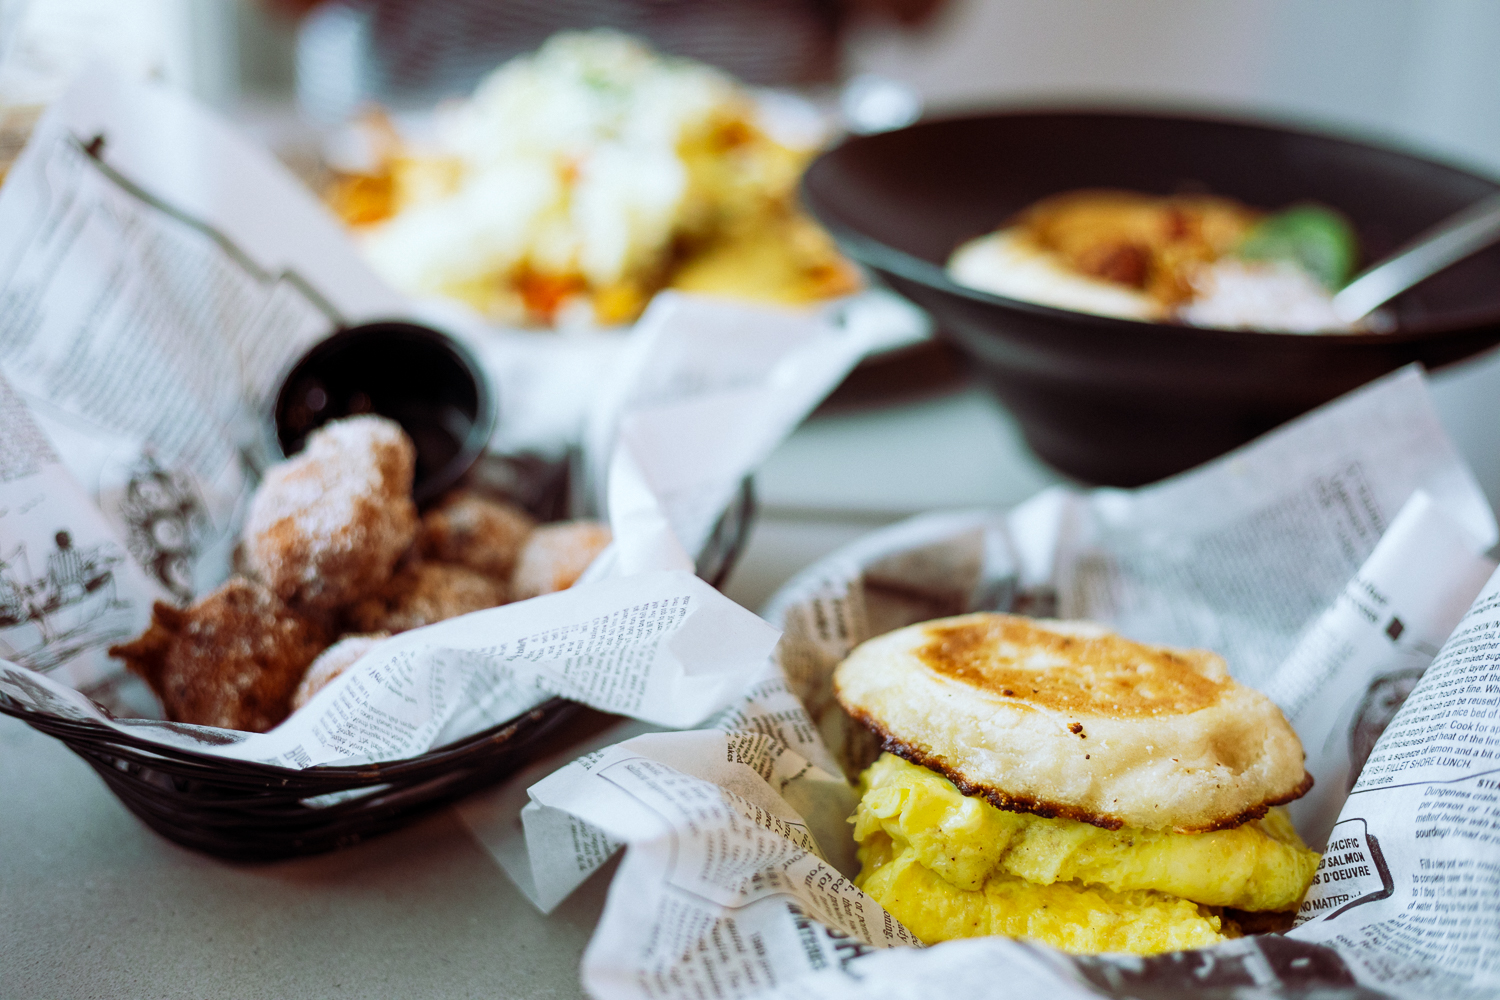 Rachel Off Duty: Delicious Food from Park City Provisions by Riverhorse